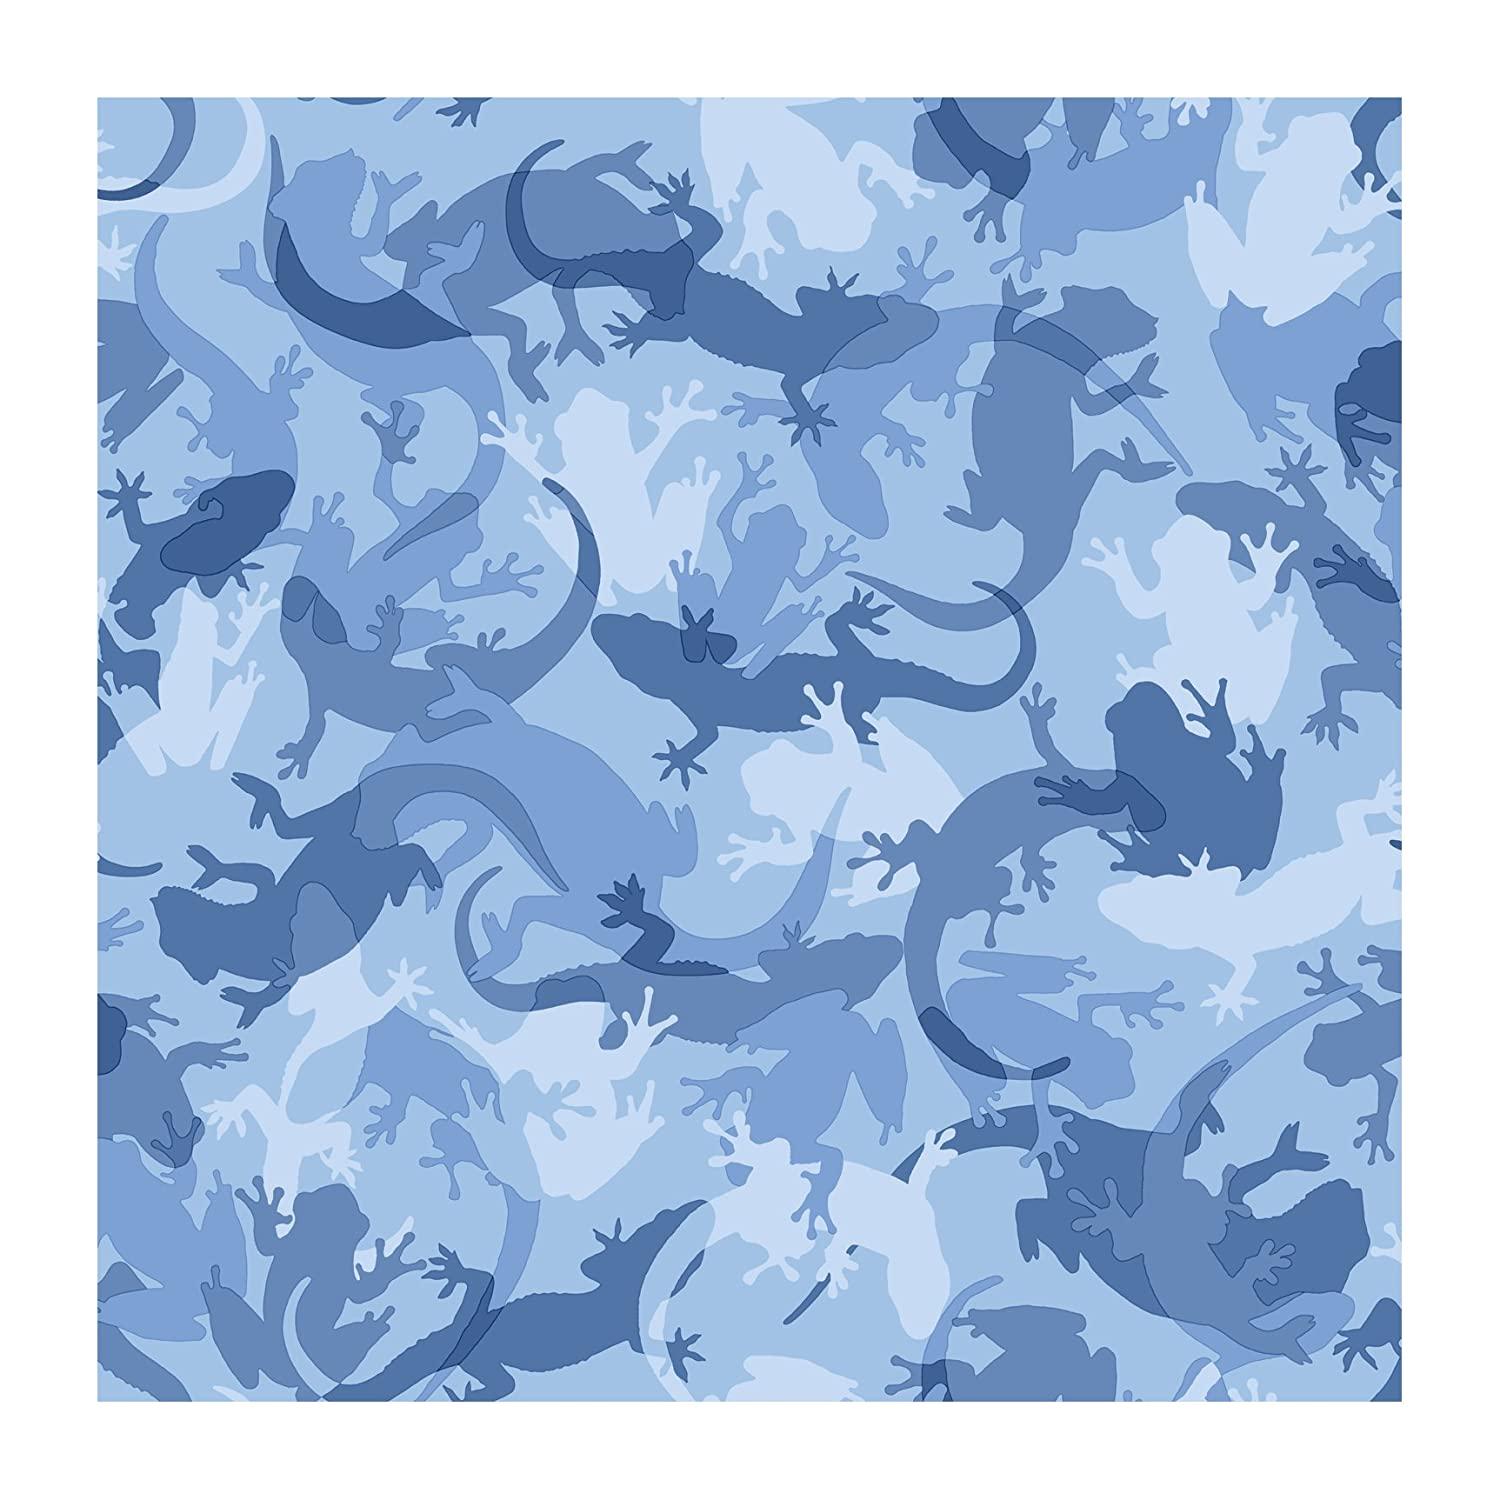 8-Inch x 10-Inch York Wallcoverings CK7805SMP Candice Olson Kids Critter Camo Wallpaper Memo Sample